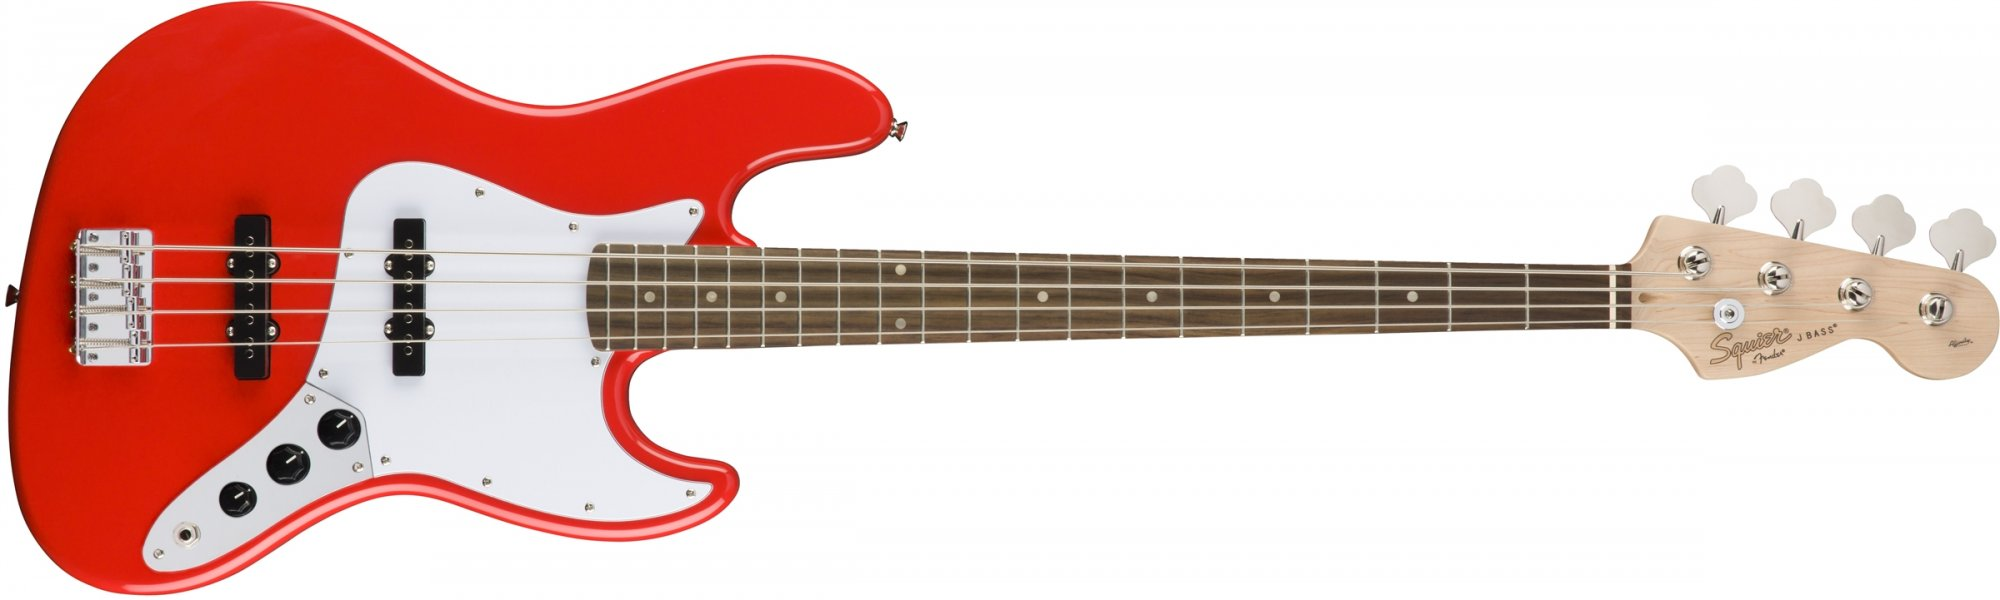 Fender Squier Affinity Jazz Bass Race Red